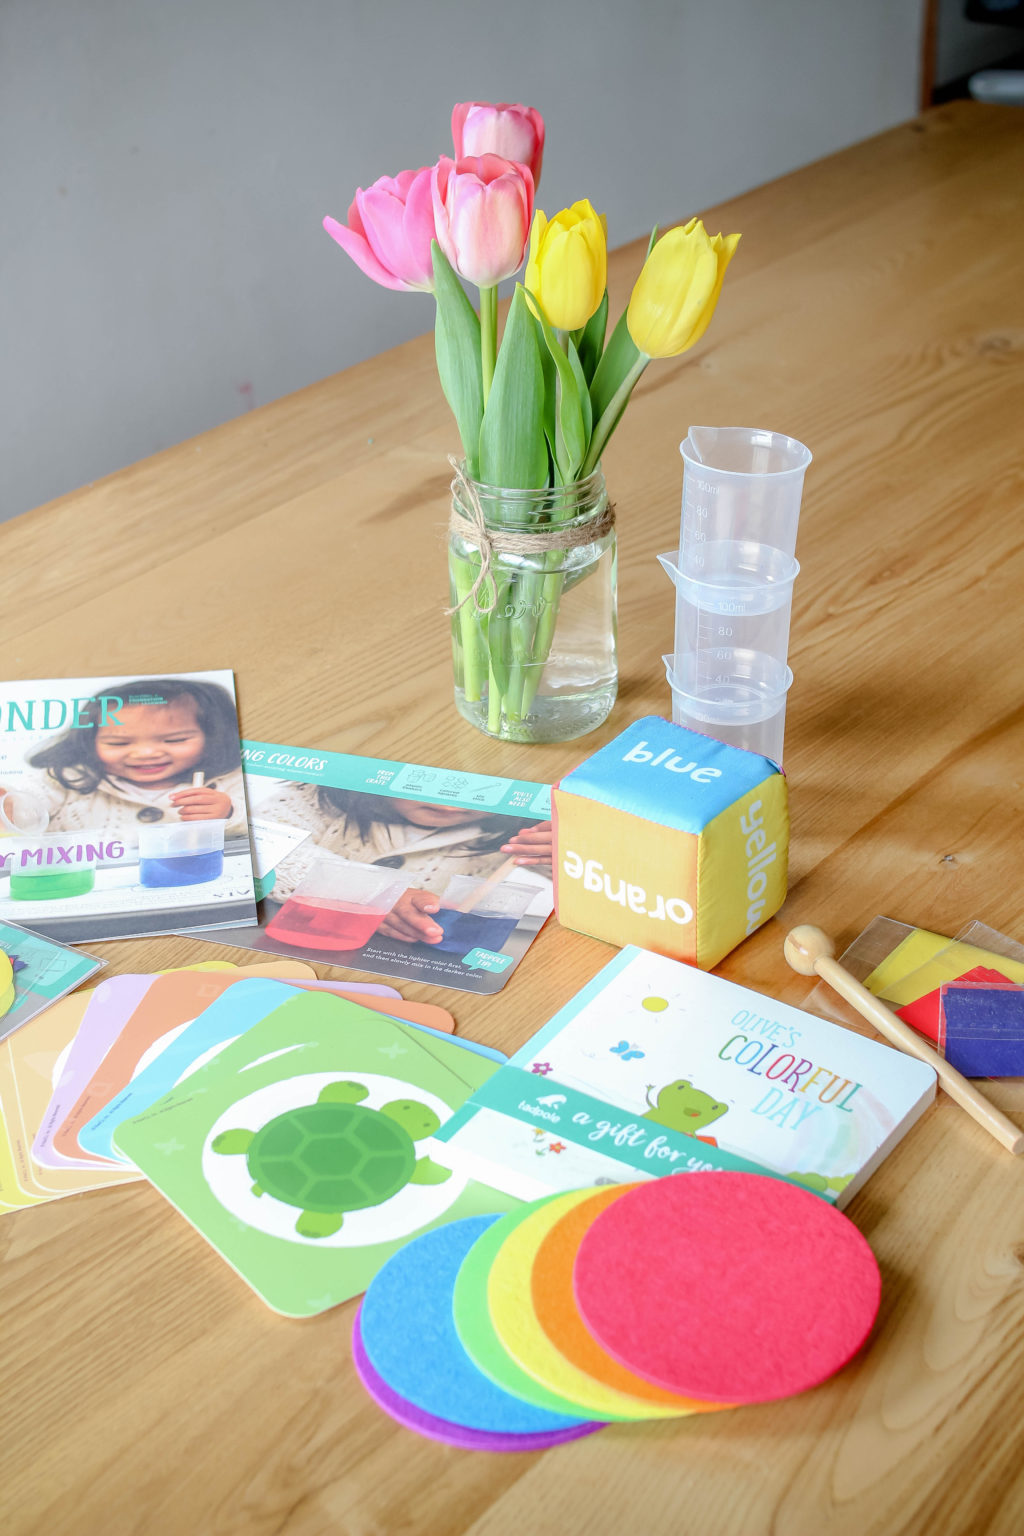 Check out these kids products you definitely don't want to miss out on!